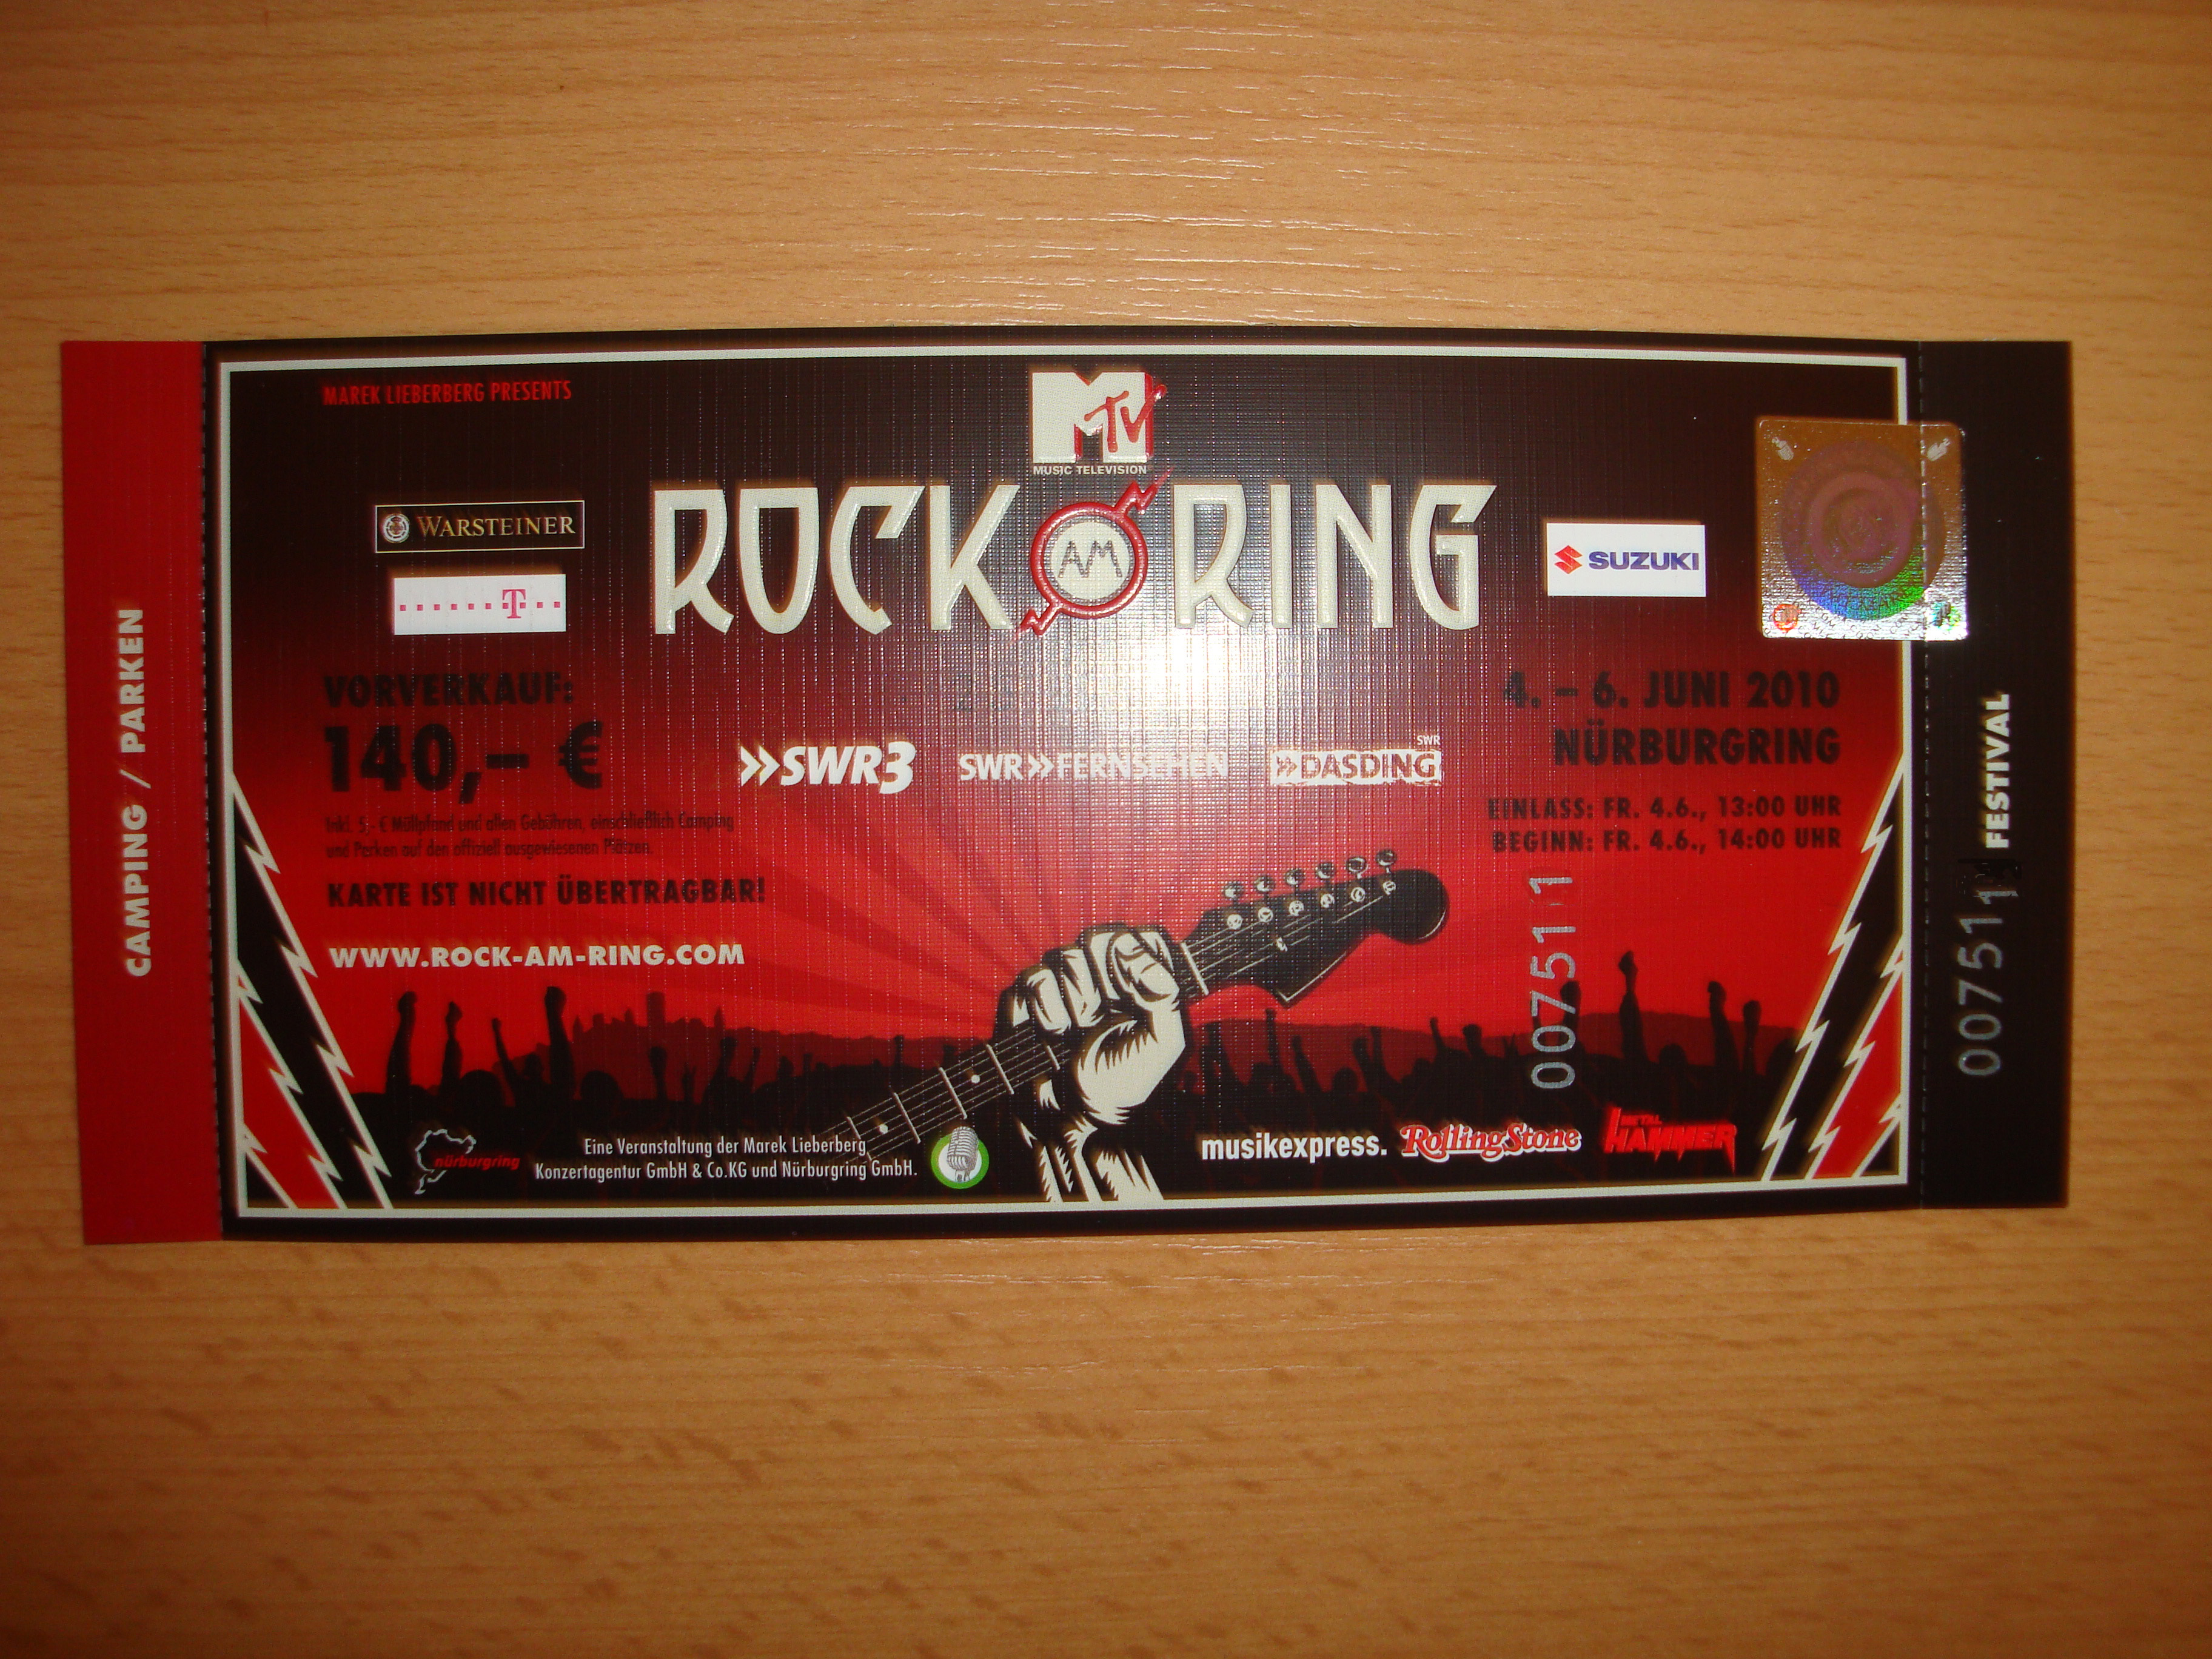 Rock Am Ring Karte.Tages Tickets Hardcover Für Rock Am Ring 2010 Inkl Camping In